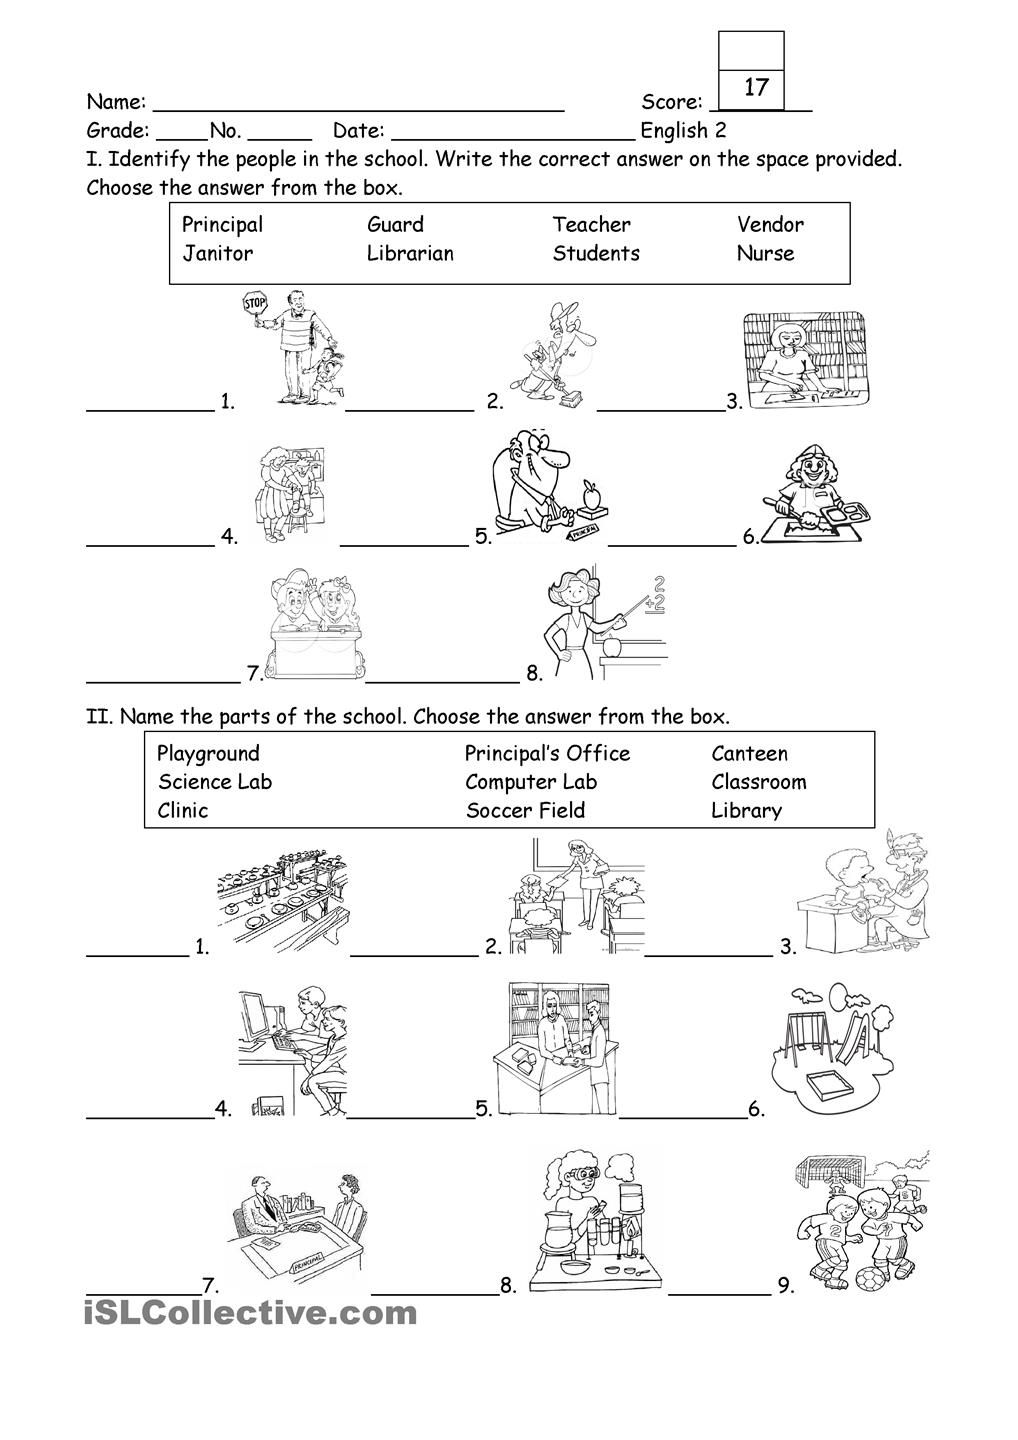 Pencil control worksheet for kids 187 tracing line worksheet for kids - People And Part Of The School The Schoolworksheetsstudent Centered Resourcesmenuwordsprintable